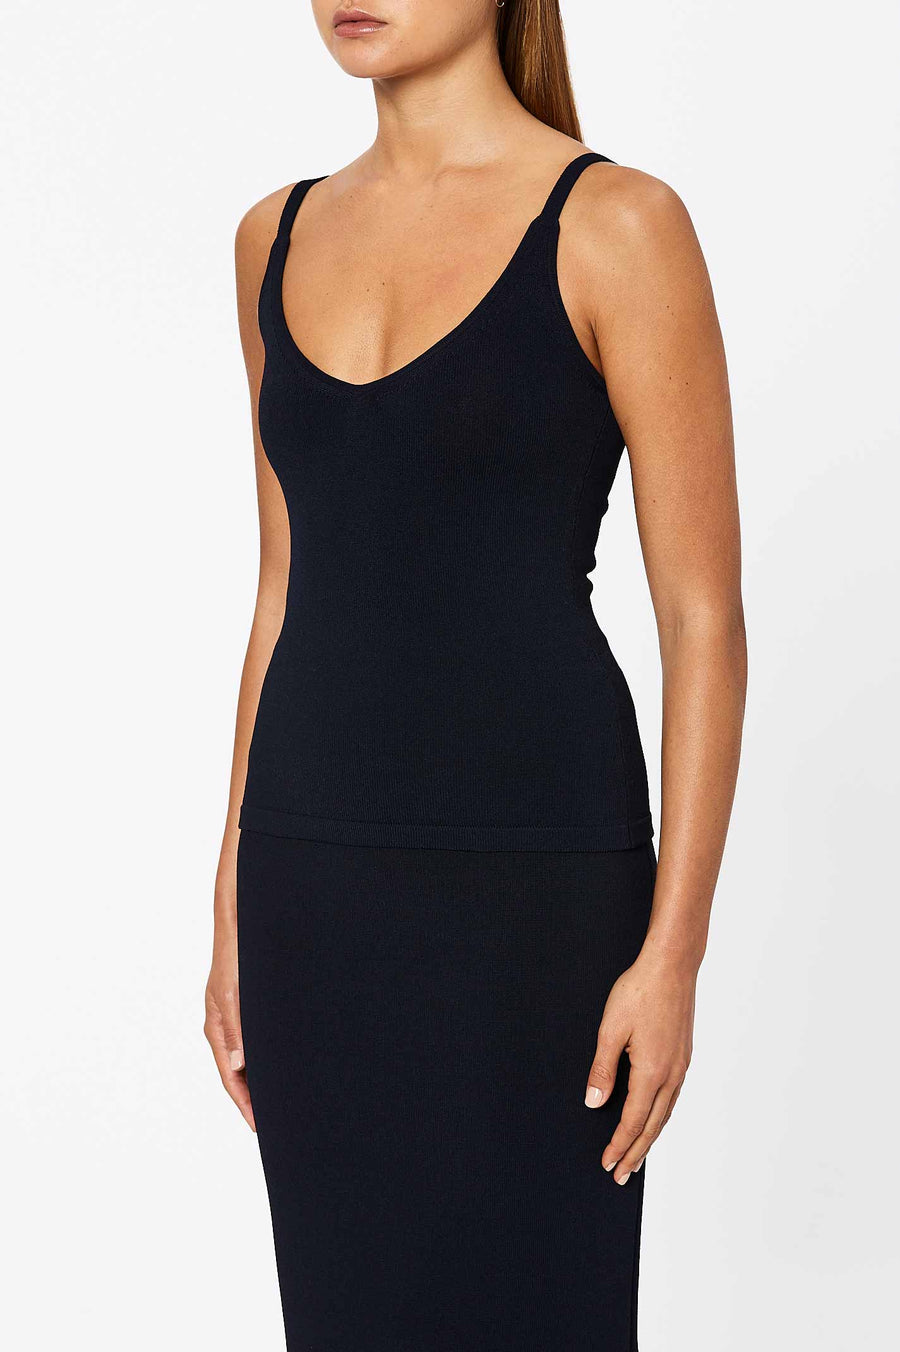 Crepe Knit Cropped Camisole Navy - Scanlan Theodore